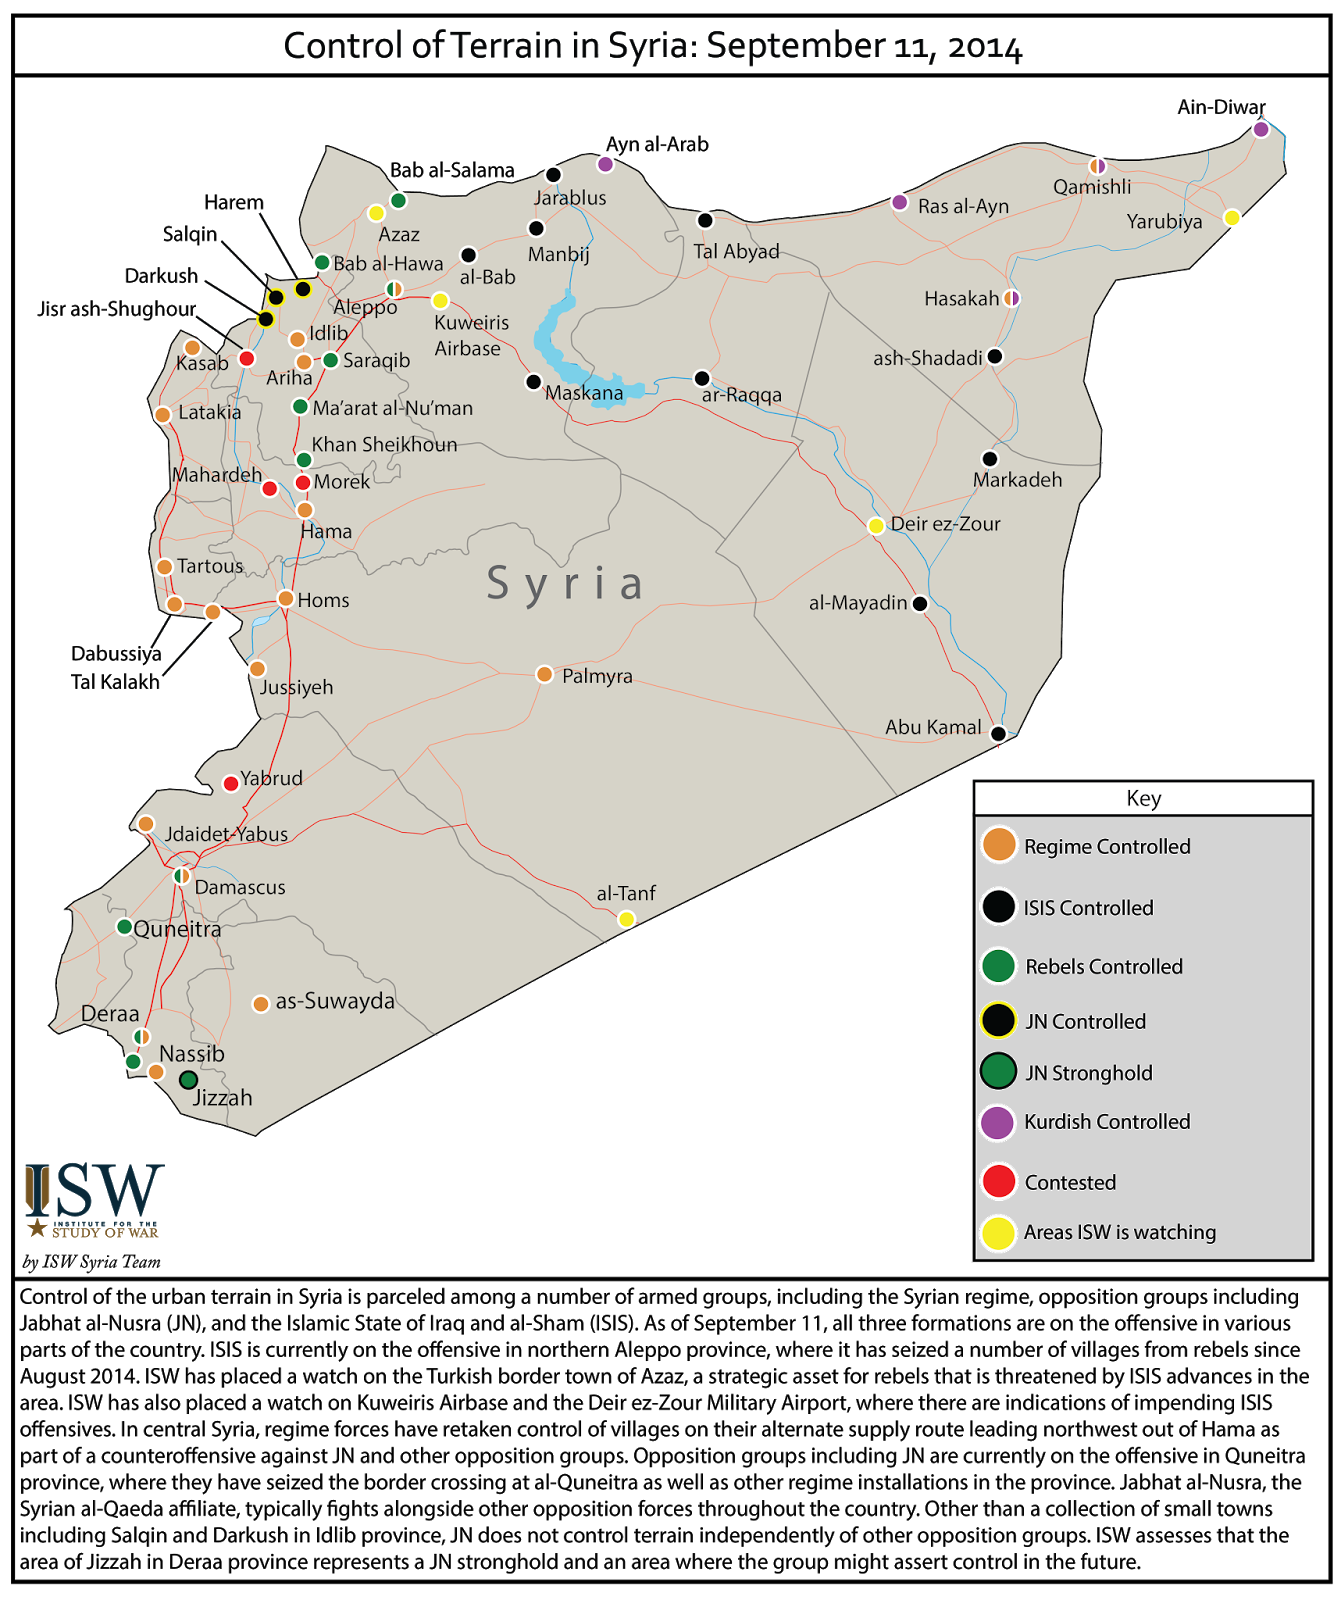 Syria. Syrian civil war graphic